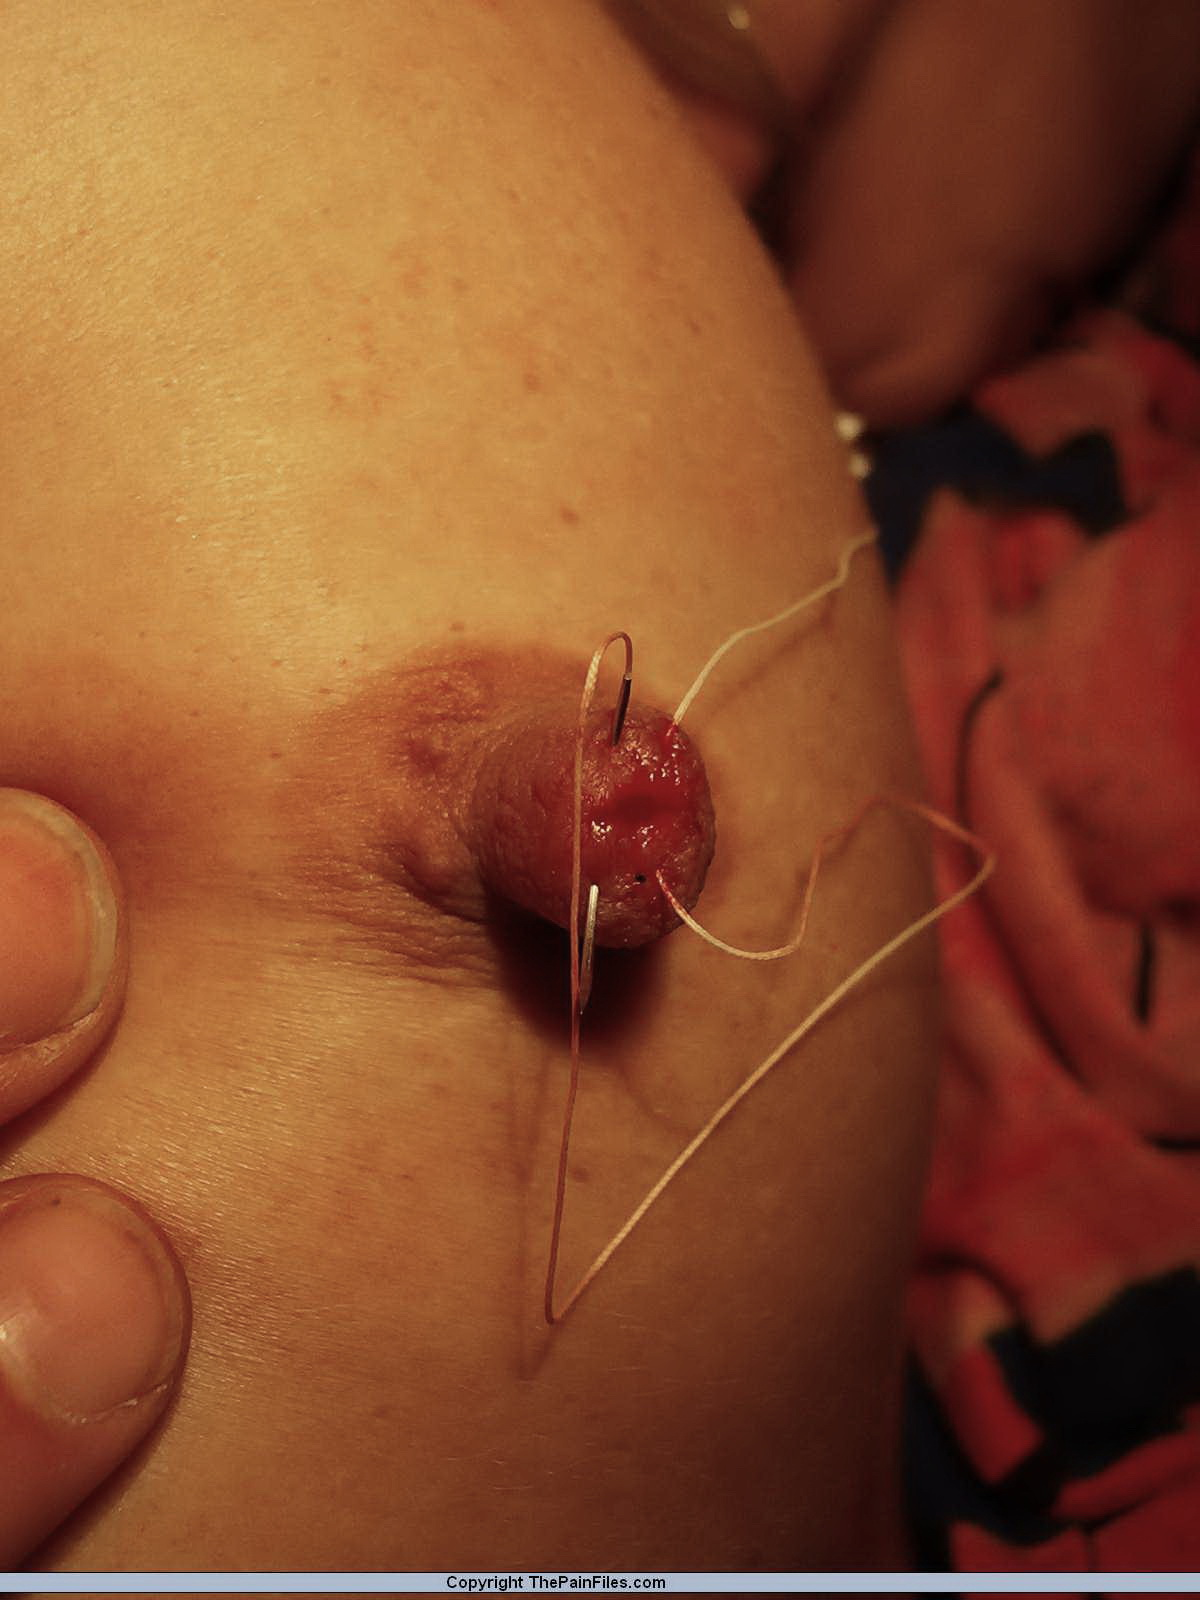 Speaking, Free pussy needle torture bdsm